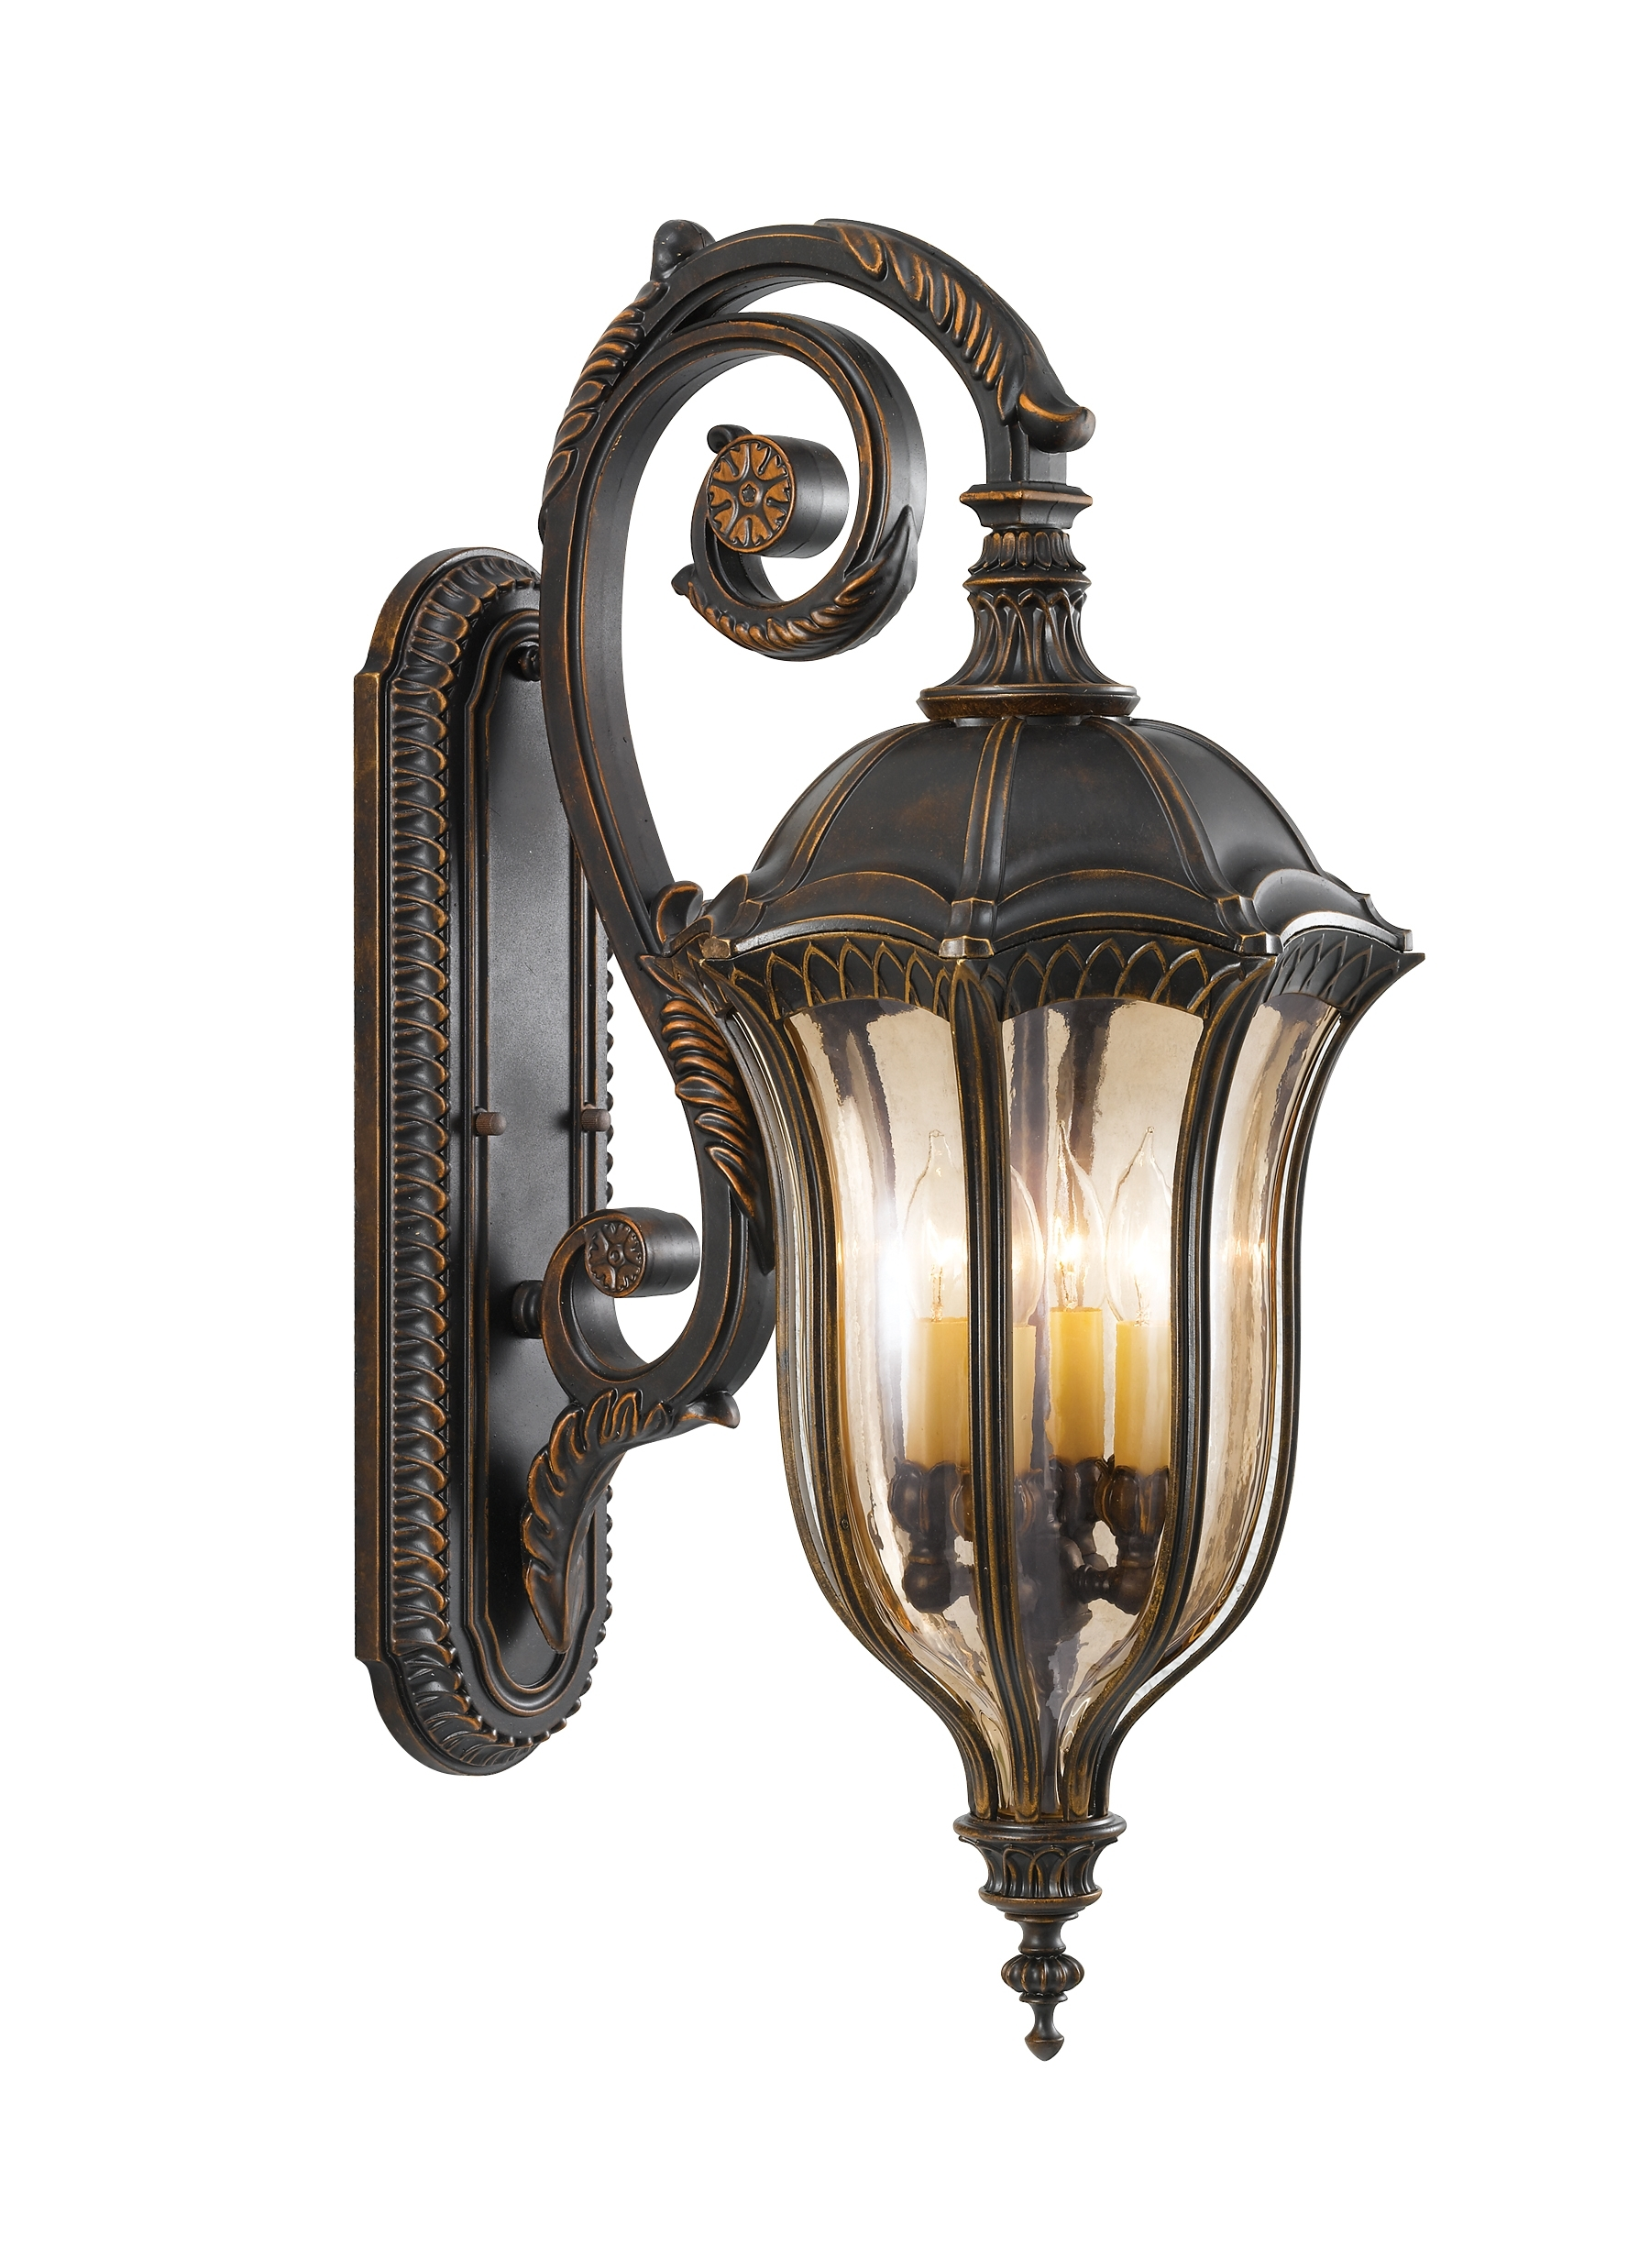 Ol6004Wal,4 – Light Wall Lantern,walnut Pertaining To Best And Newest Tuscan Outdoor Wall Lighting (View 9 of 20)